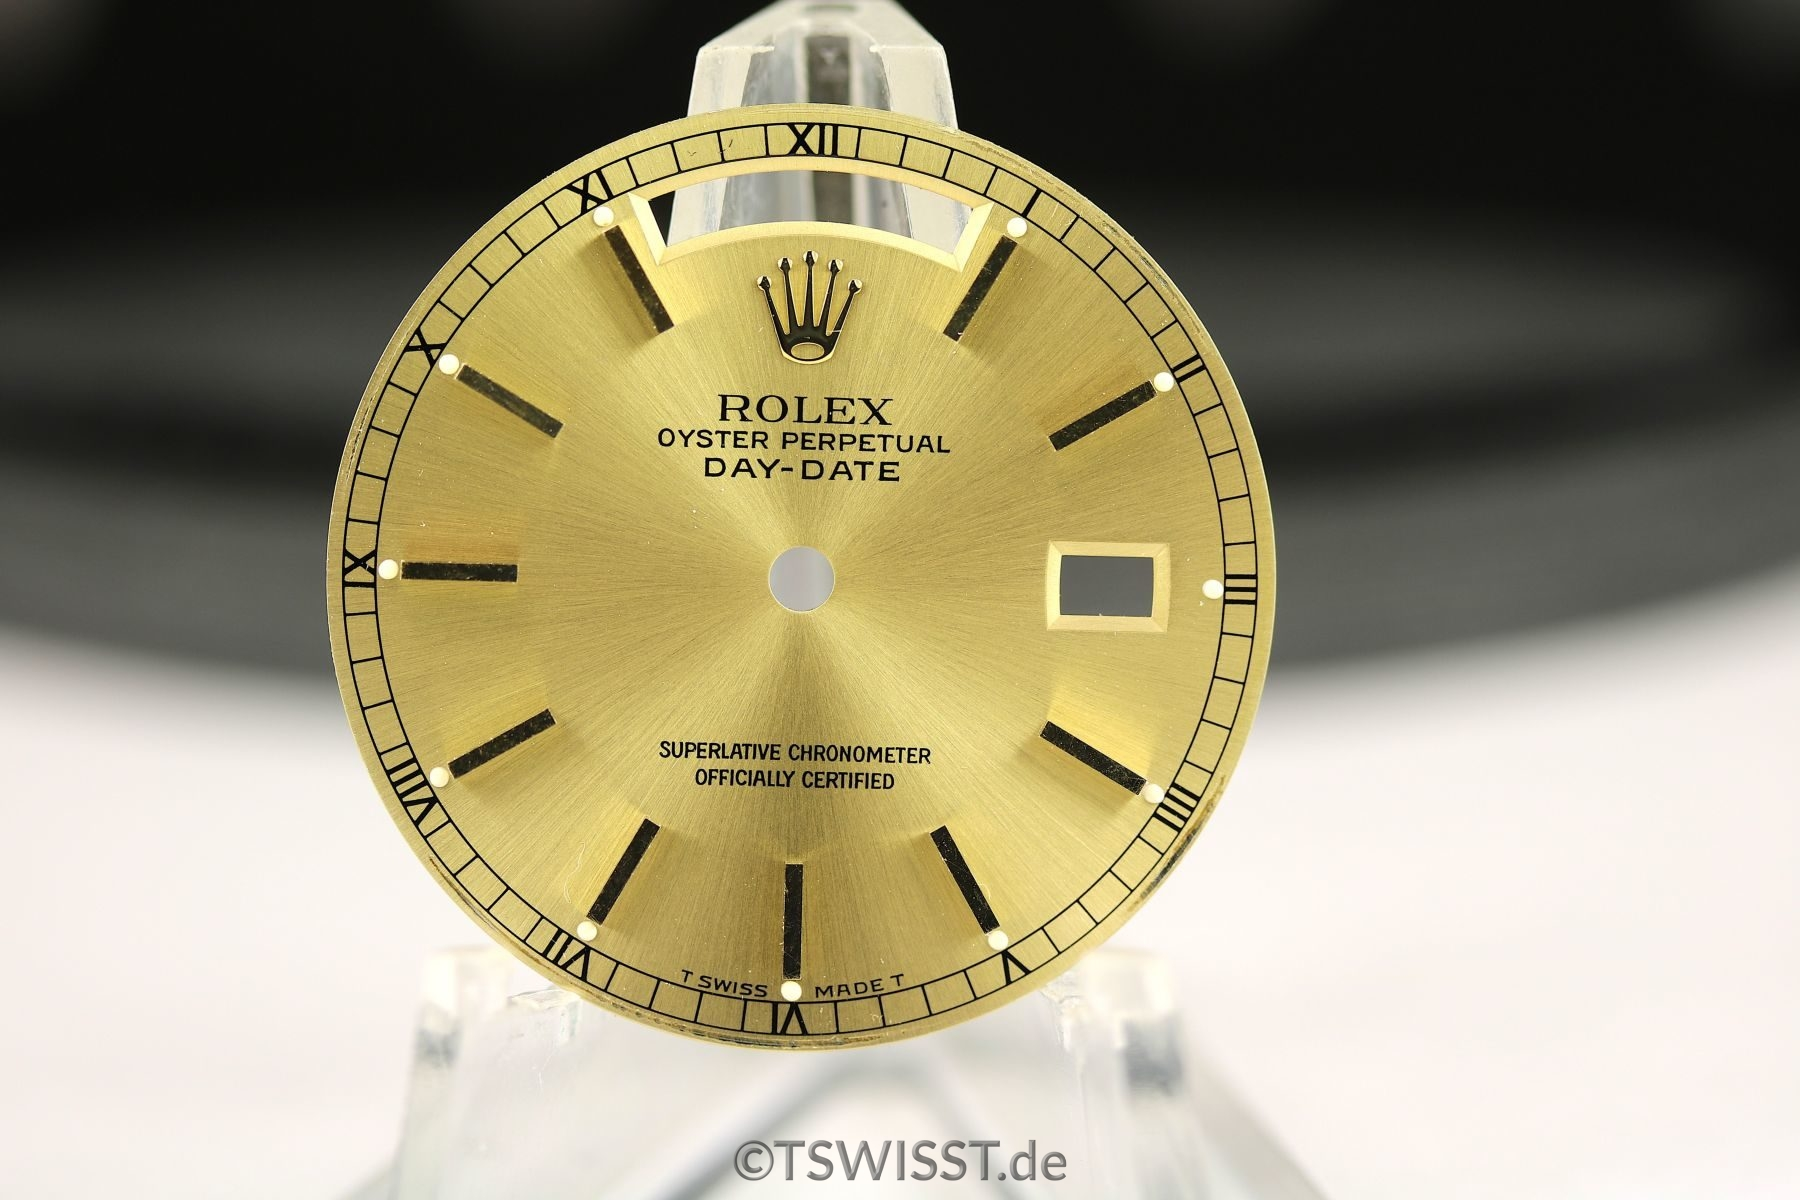 Rolex dial for Day-date